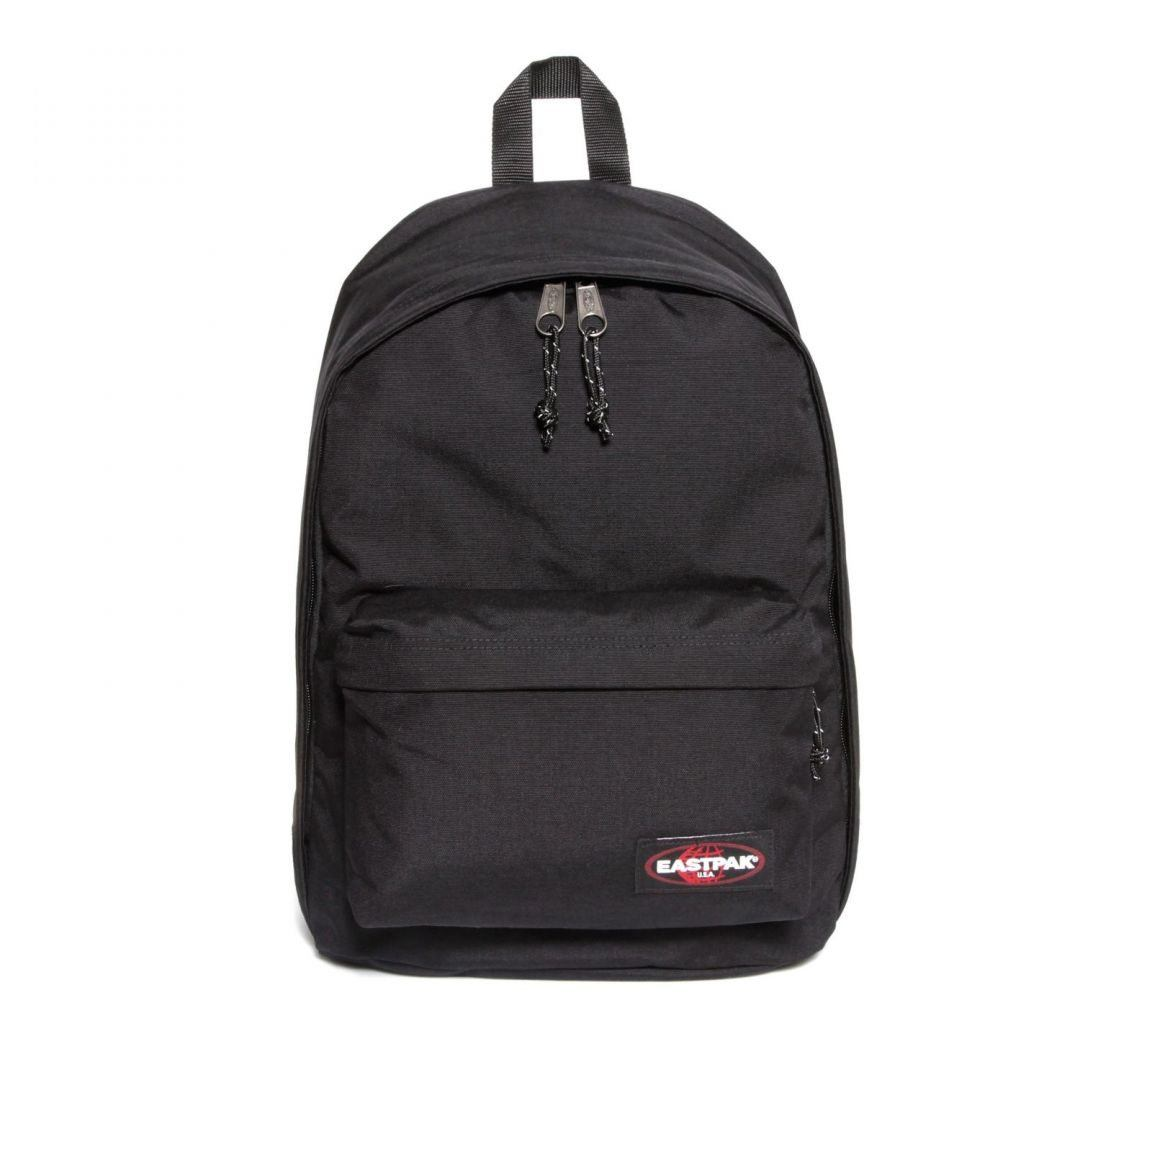 Eastpak Out Of Office Laptoprucksack bloxx brown